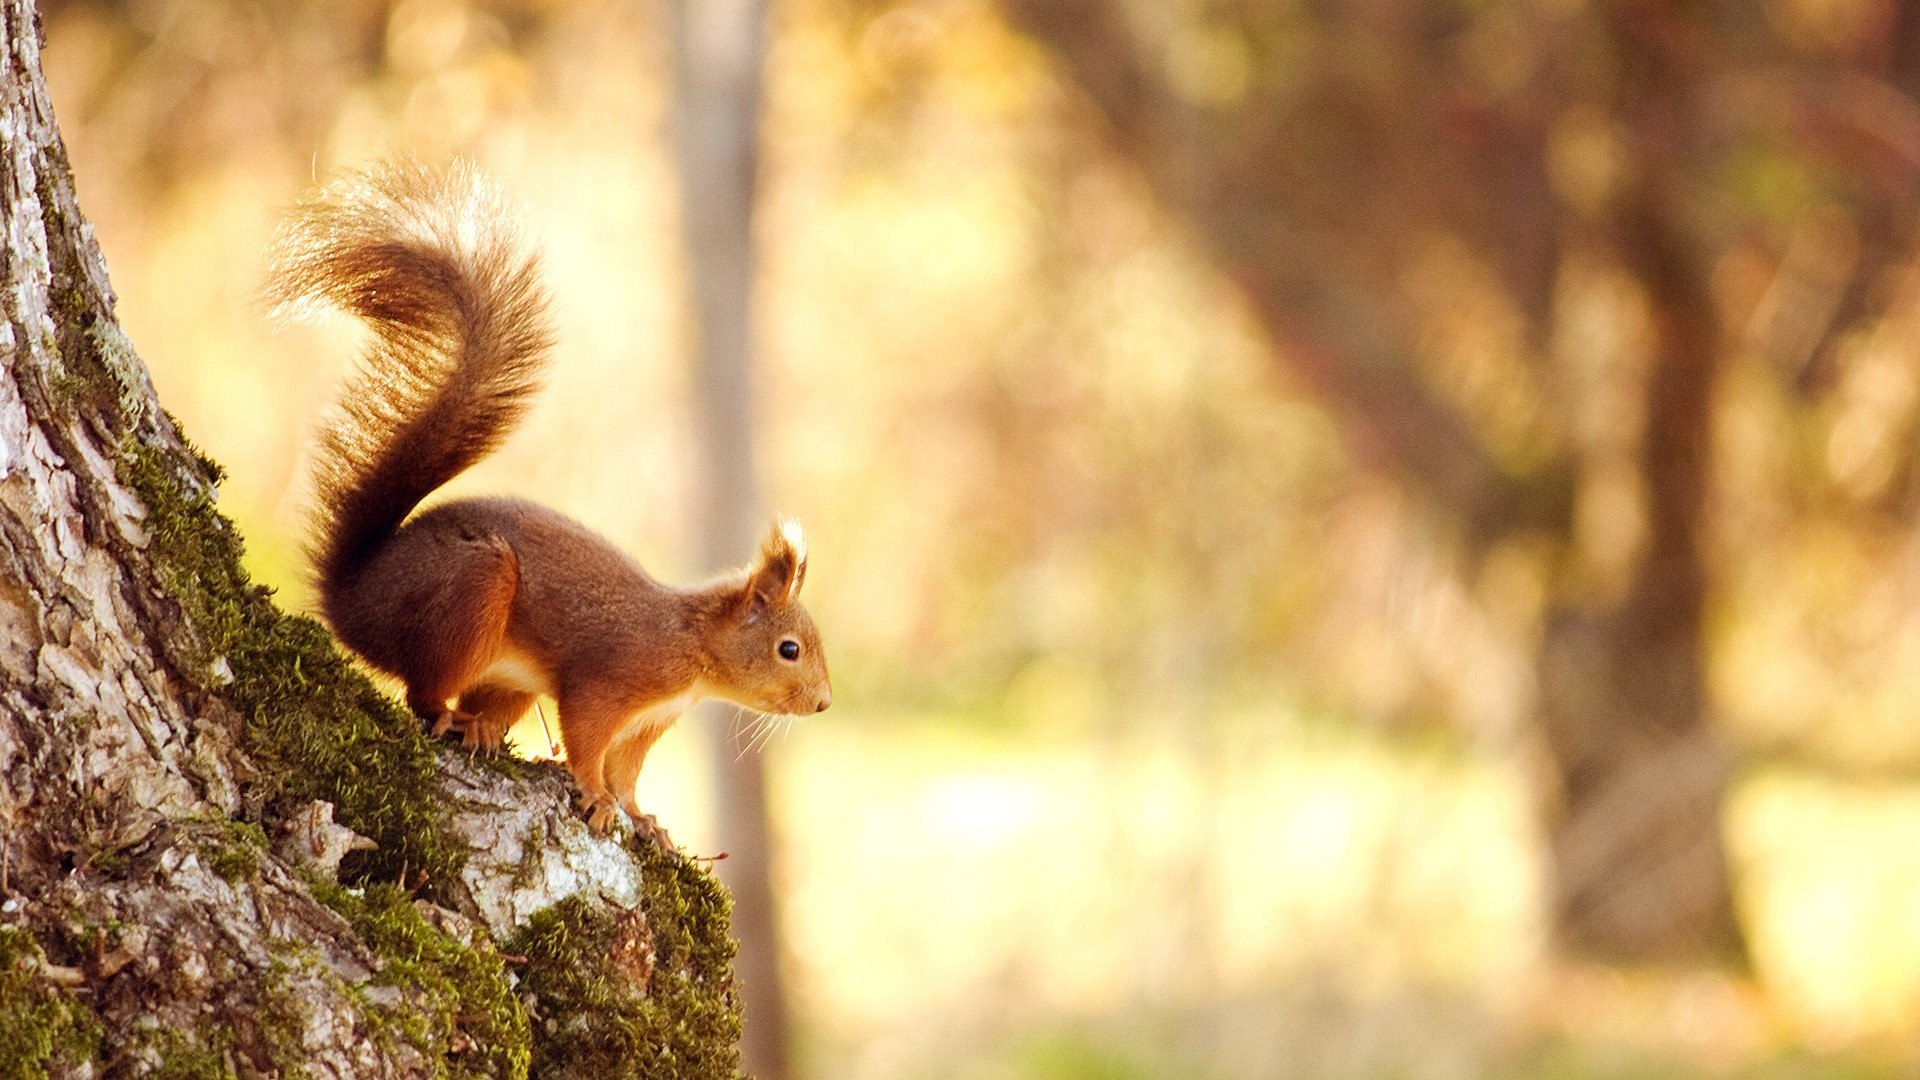 Animal nature cute forest squirrel wallpaper | | 696254 |  WallpaperUP